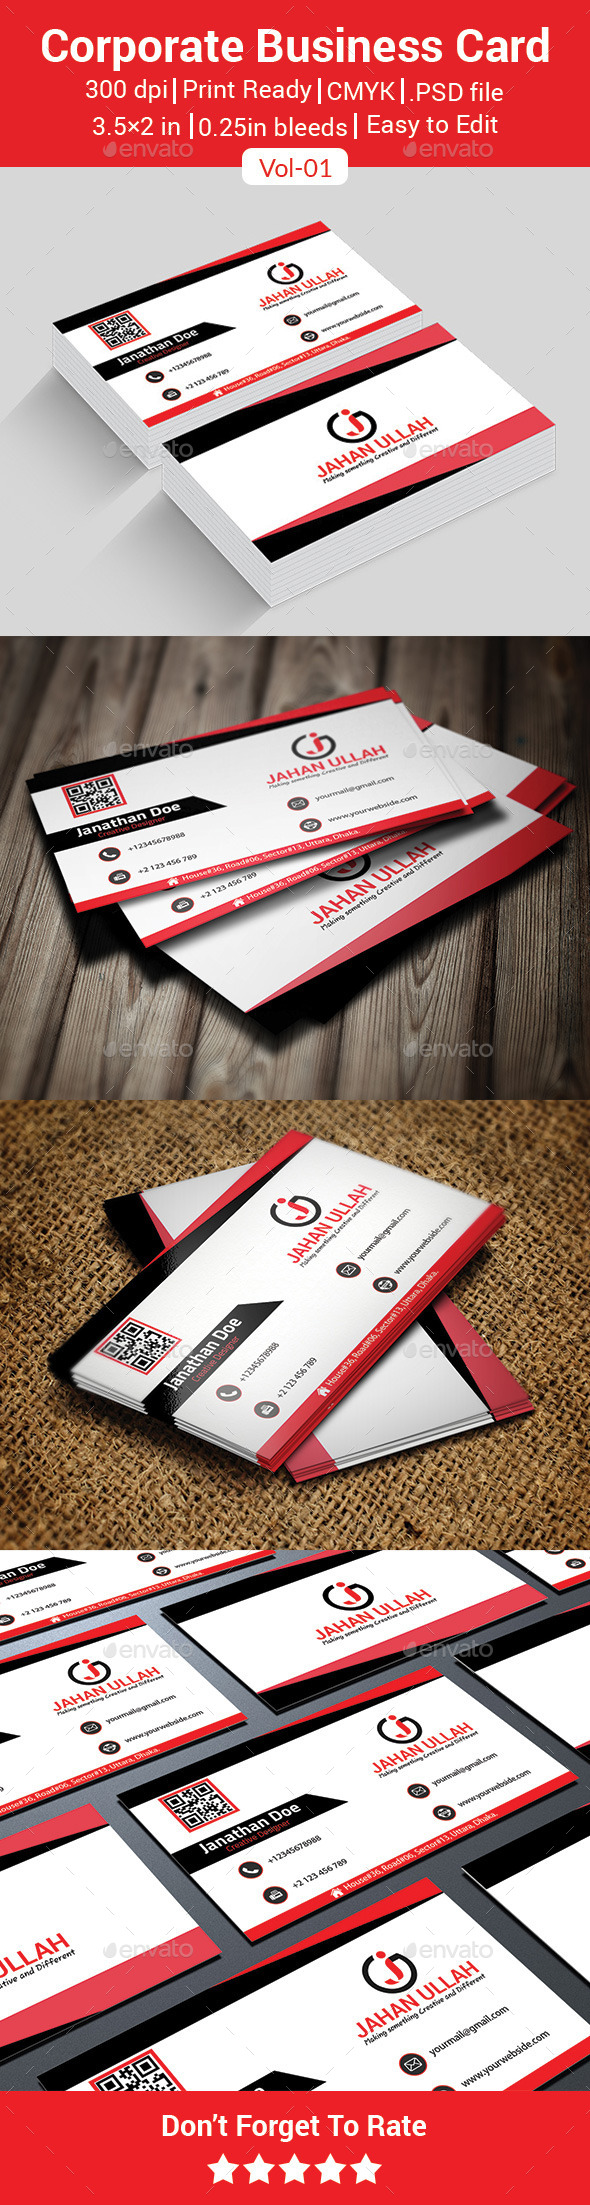 Corporate Business Card Vol-01 - Business Cards Print Templates